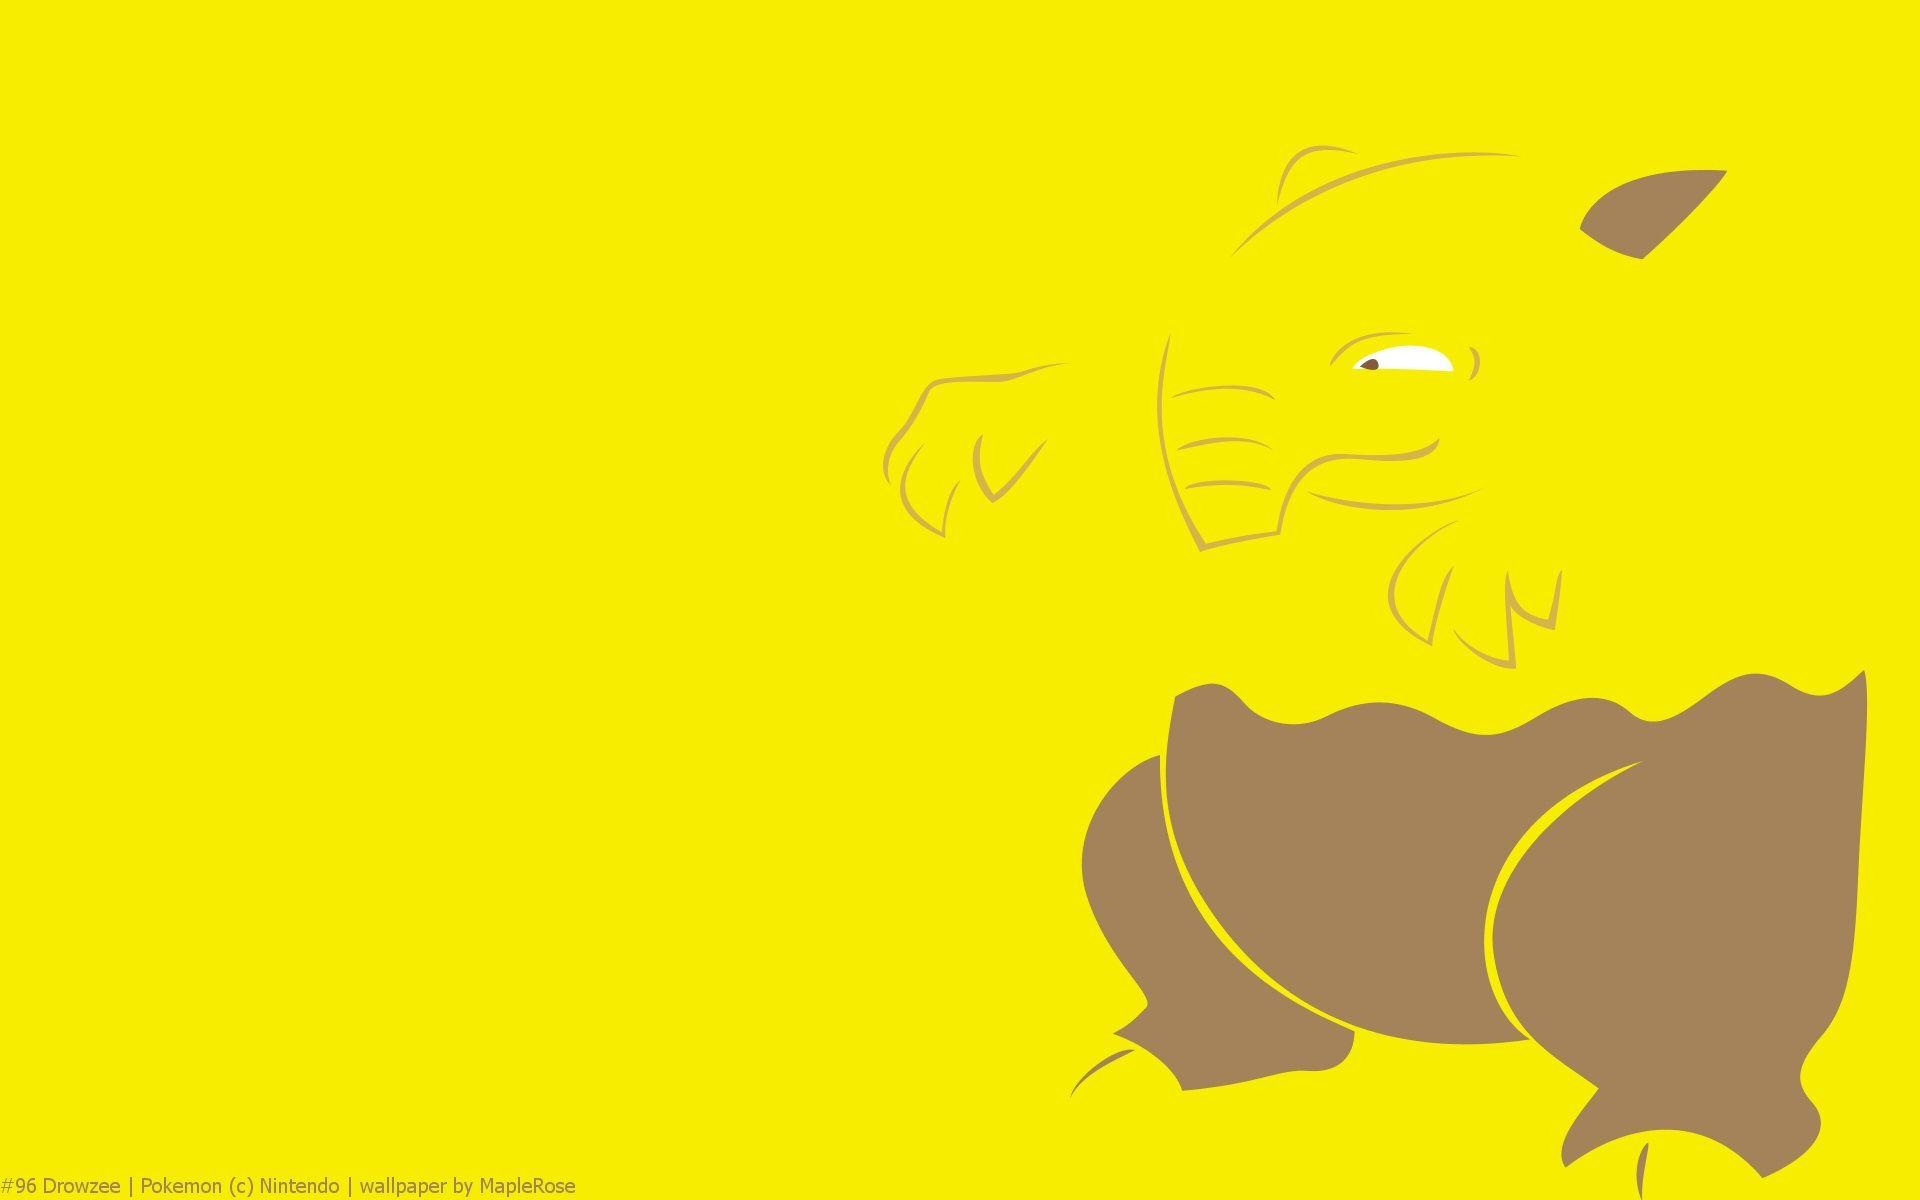 Drowzee Pokemon HD Wallpaper - Free HD wallpapers, Iphone, Samsung ...